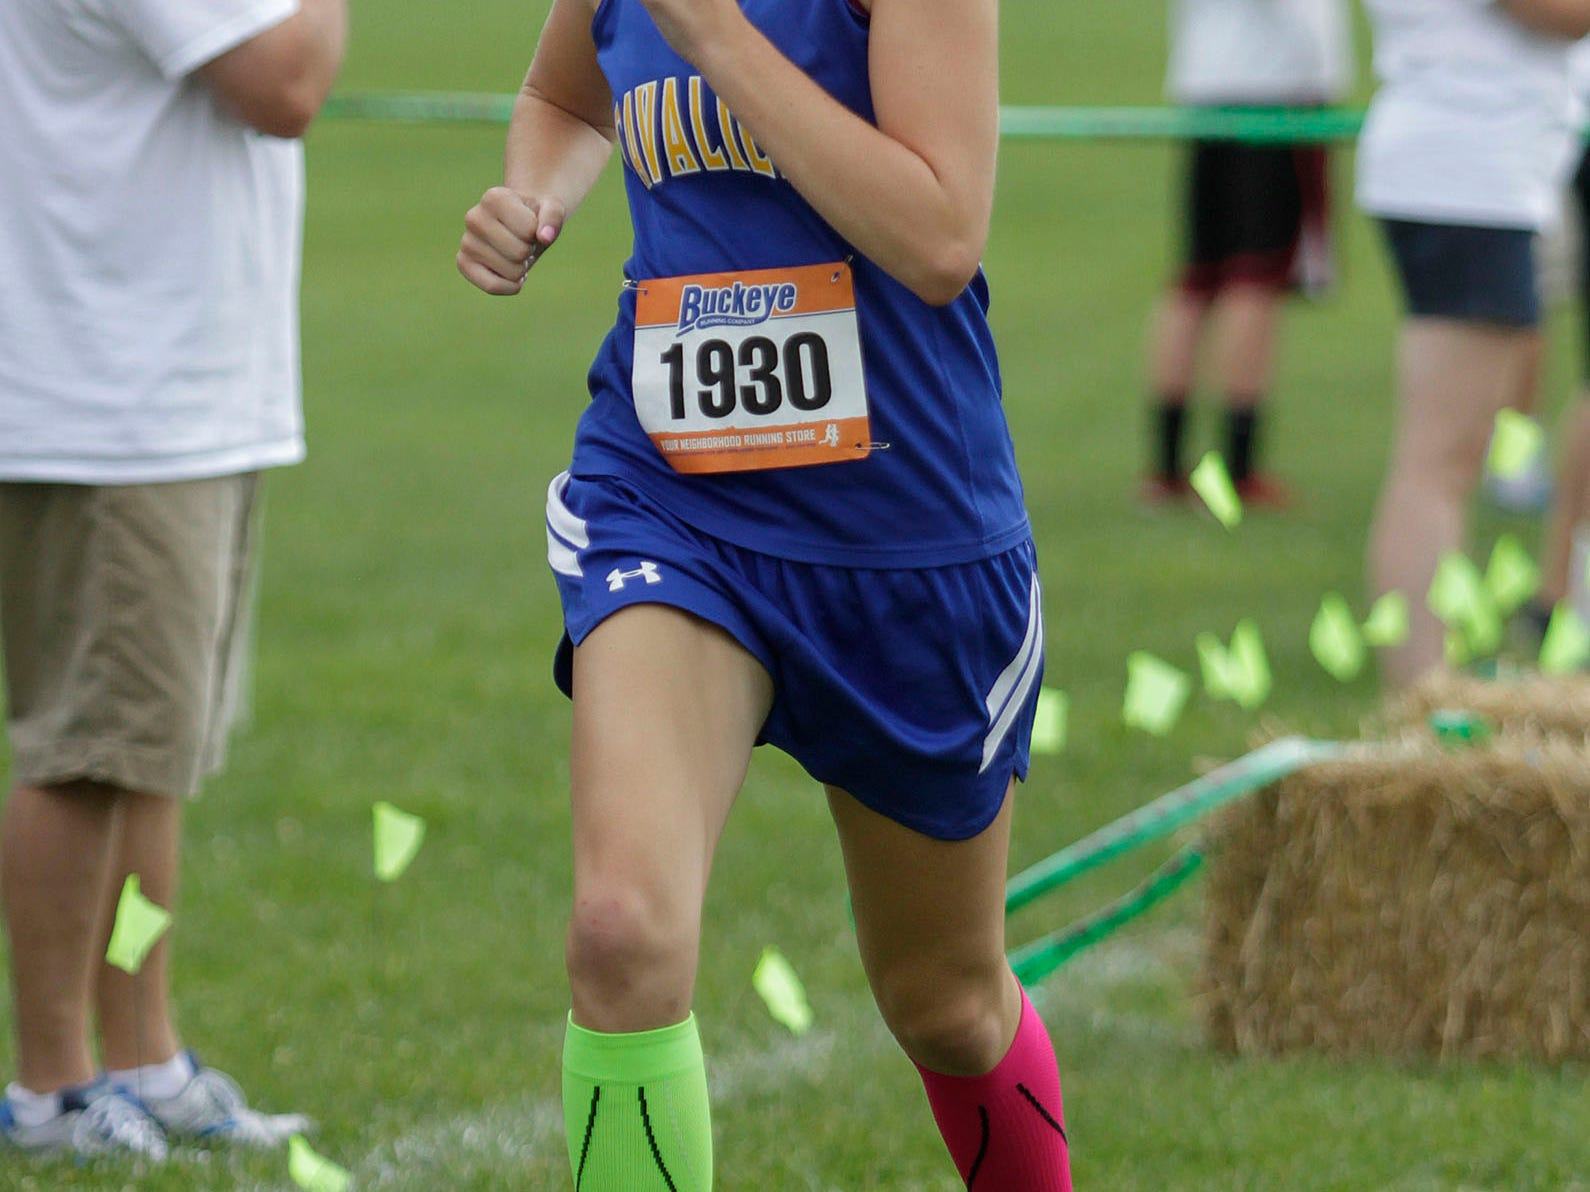 Kansas Greenwell of Purcell Marian runs with her signature socks at the Mason Invitational Sept. 6.